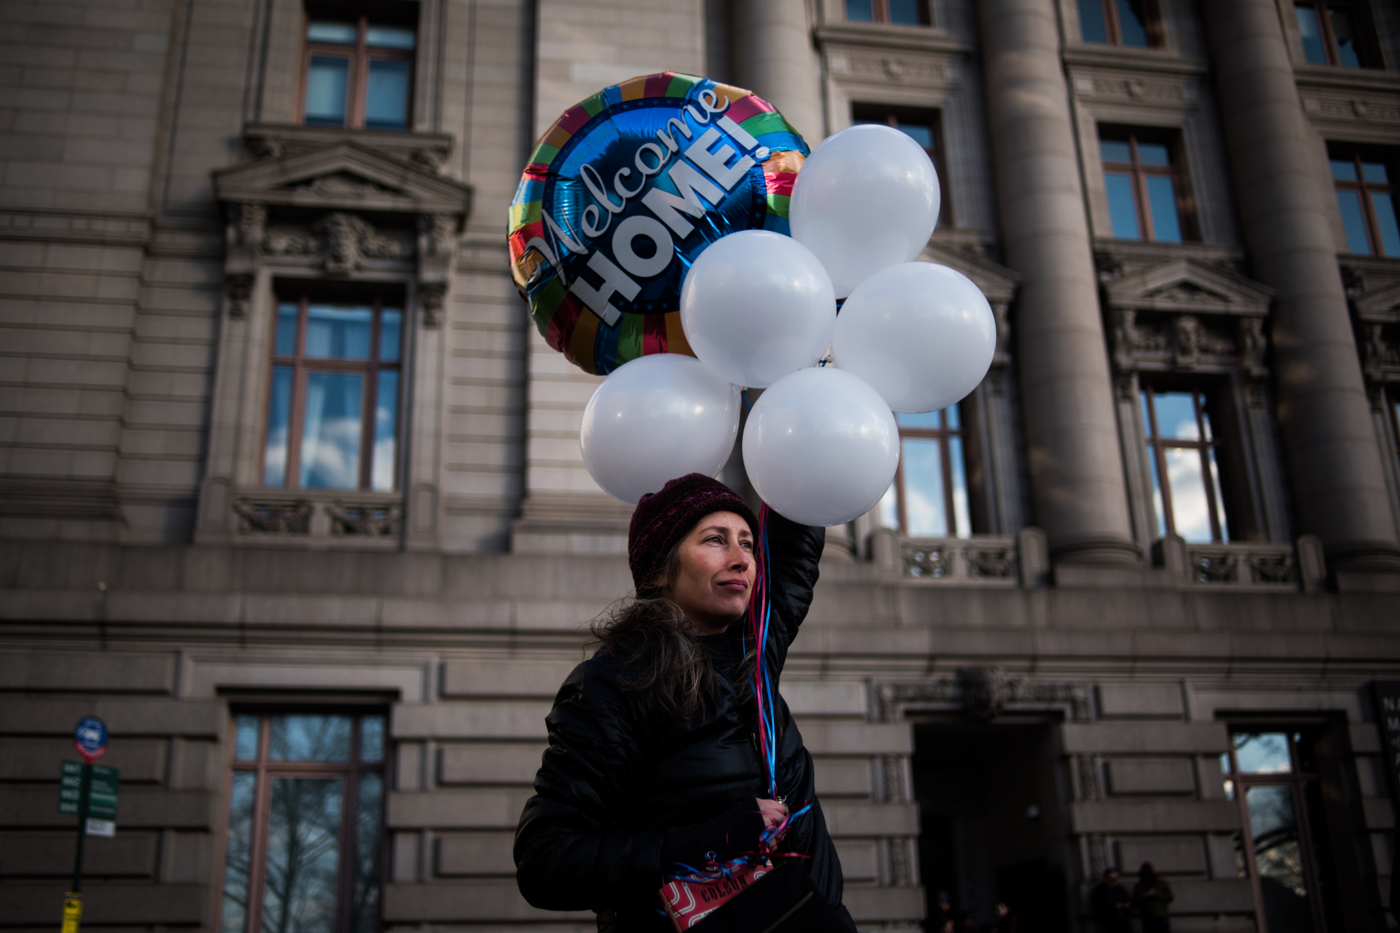 Dawn Eshelman holds balloons, symbolically welcoming refugees, prior marching from Battery Park to Federal Plaza in the Manhattan borough of New York, NY on Saturday, January 29, 2017. Credit: Mark Kauzlarich for CNN